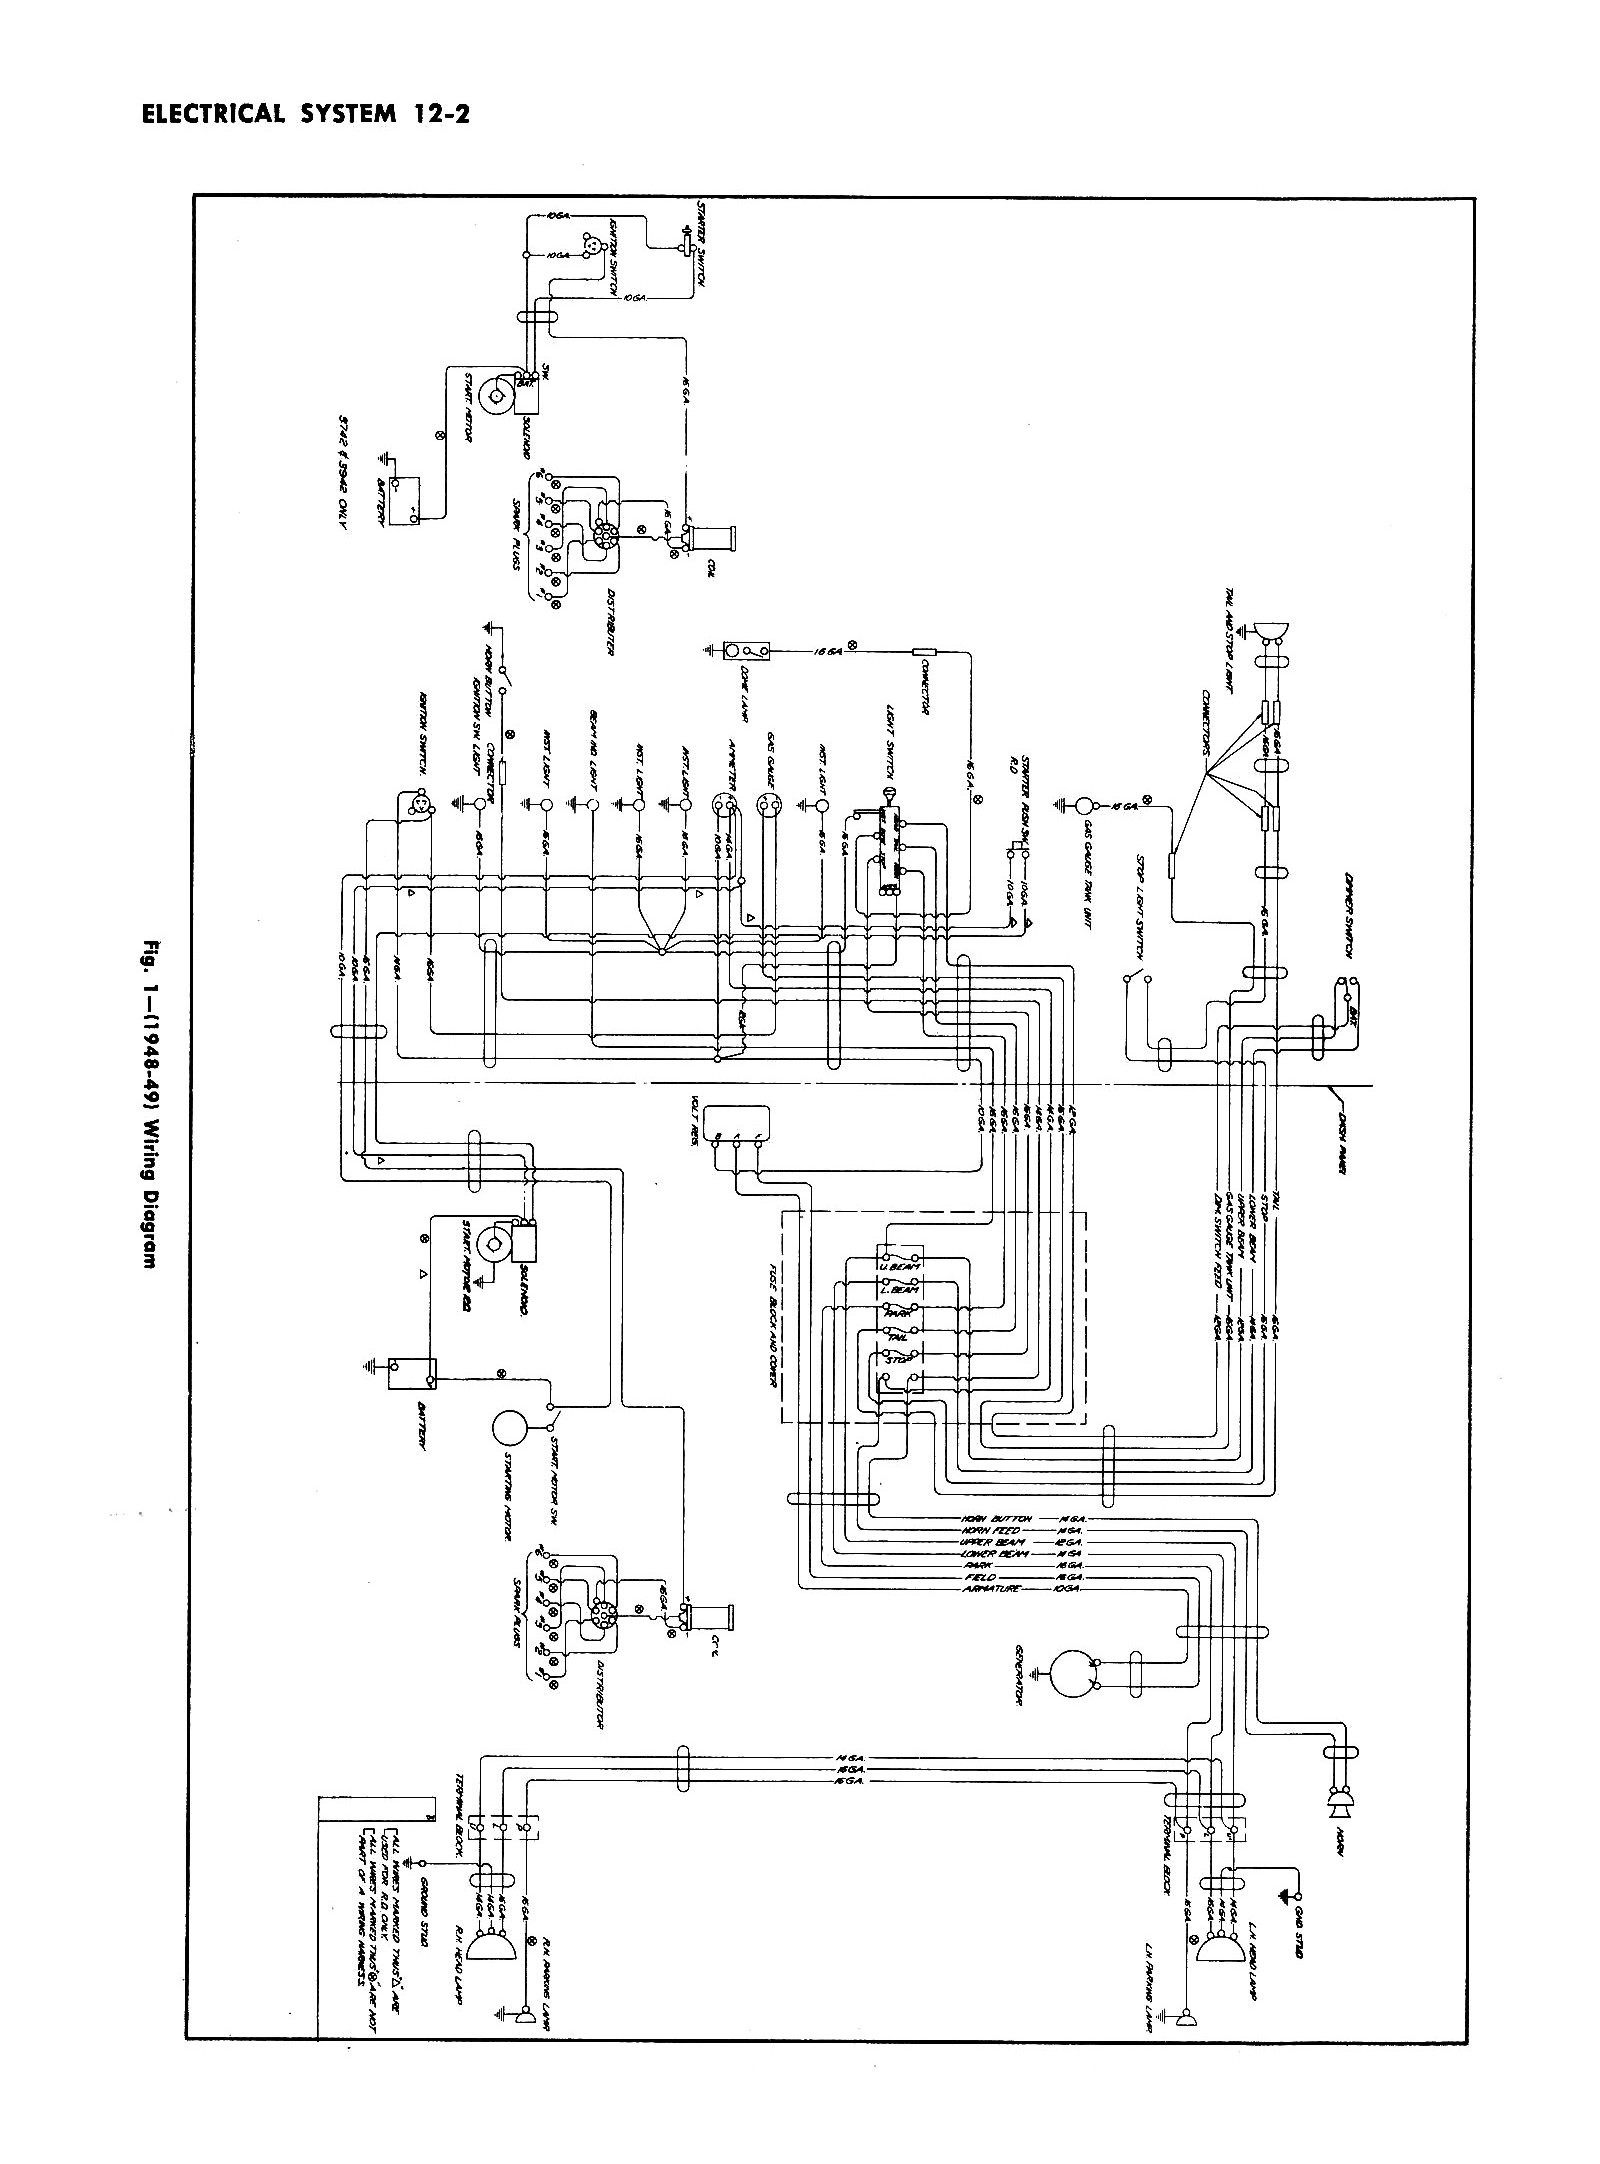 1962 Impala Fuse Box Data Wiring Diagrams Chevrolet Diagram Chevy 1964